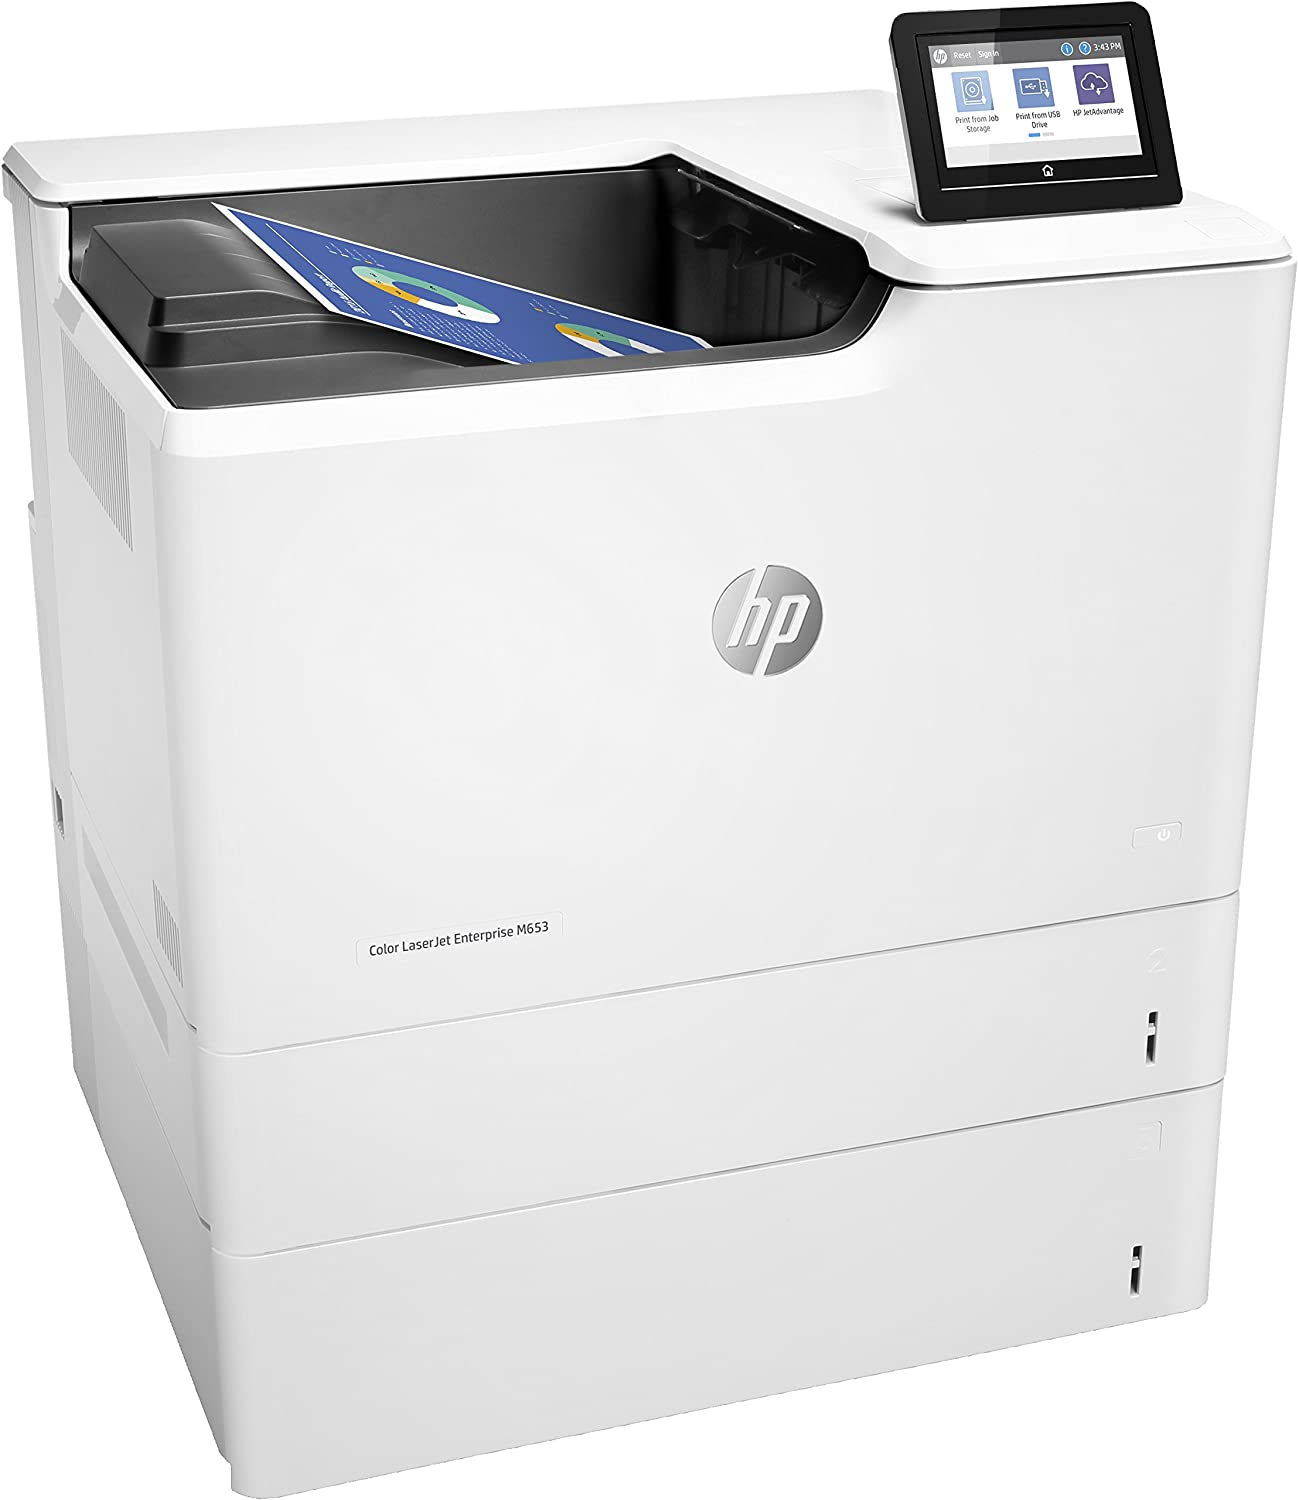 HP LaserJet Enterprise Stampante Color Enterprise M653x 2M3EZ64